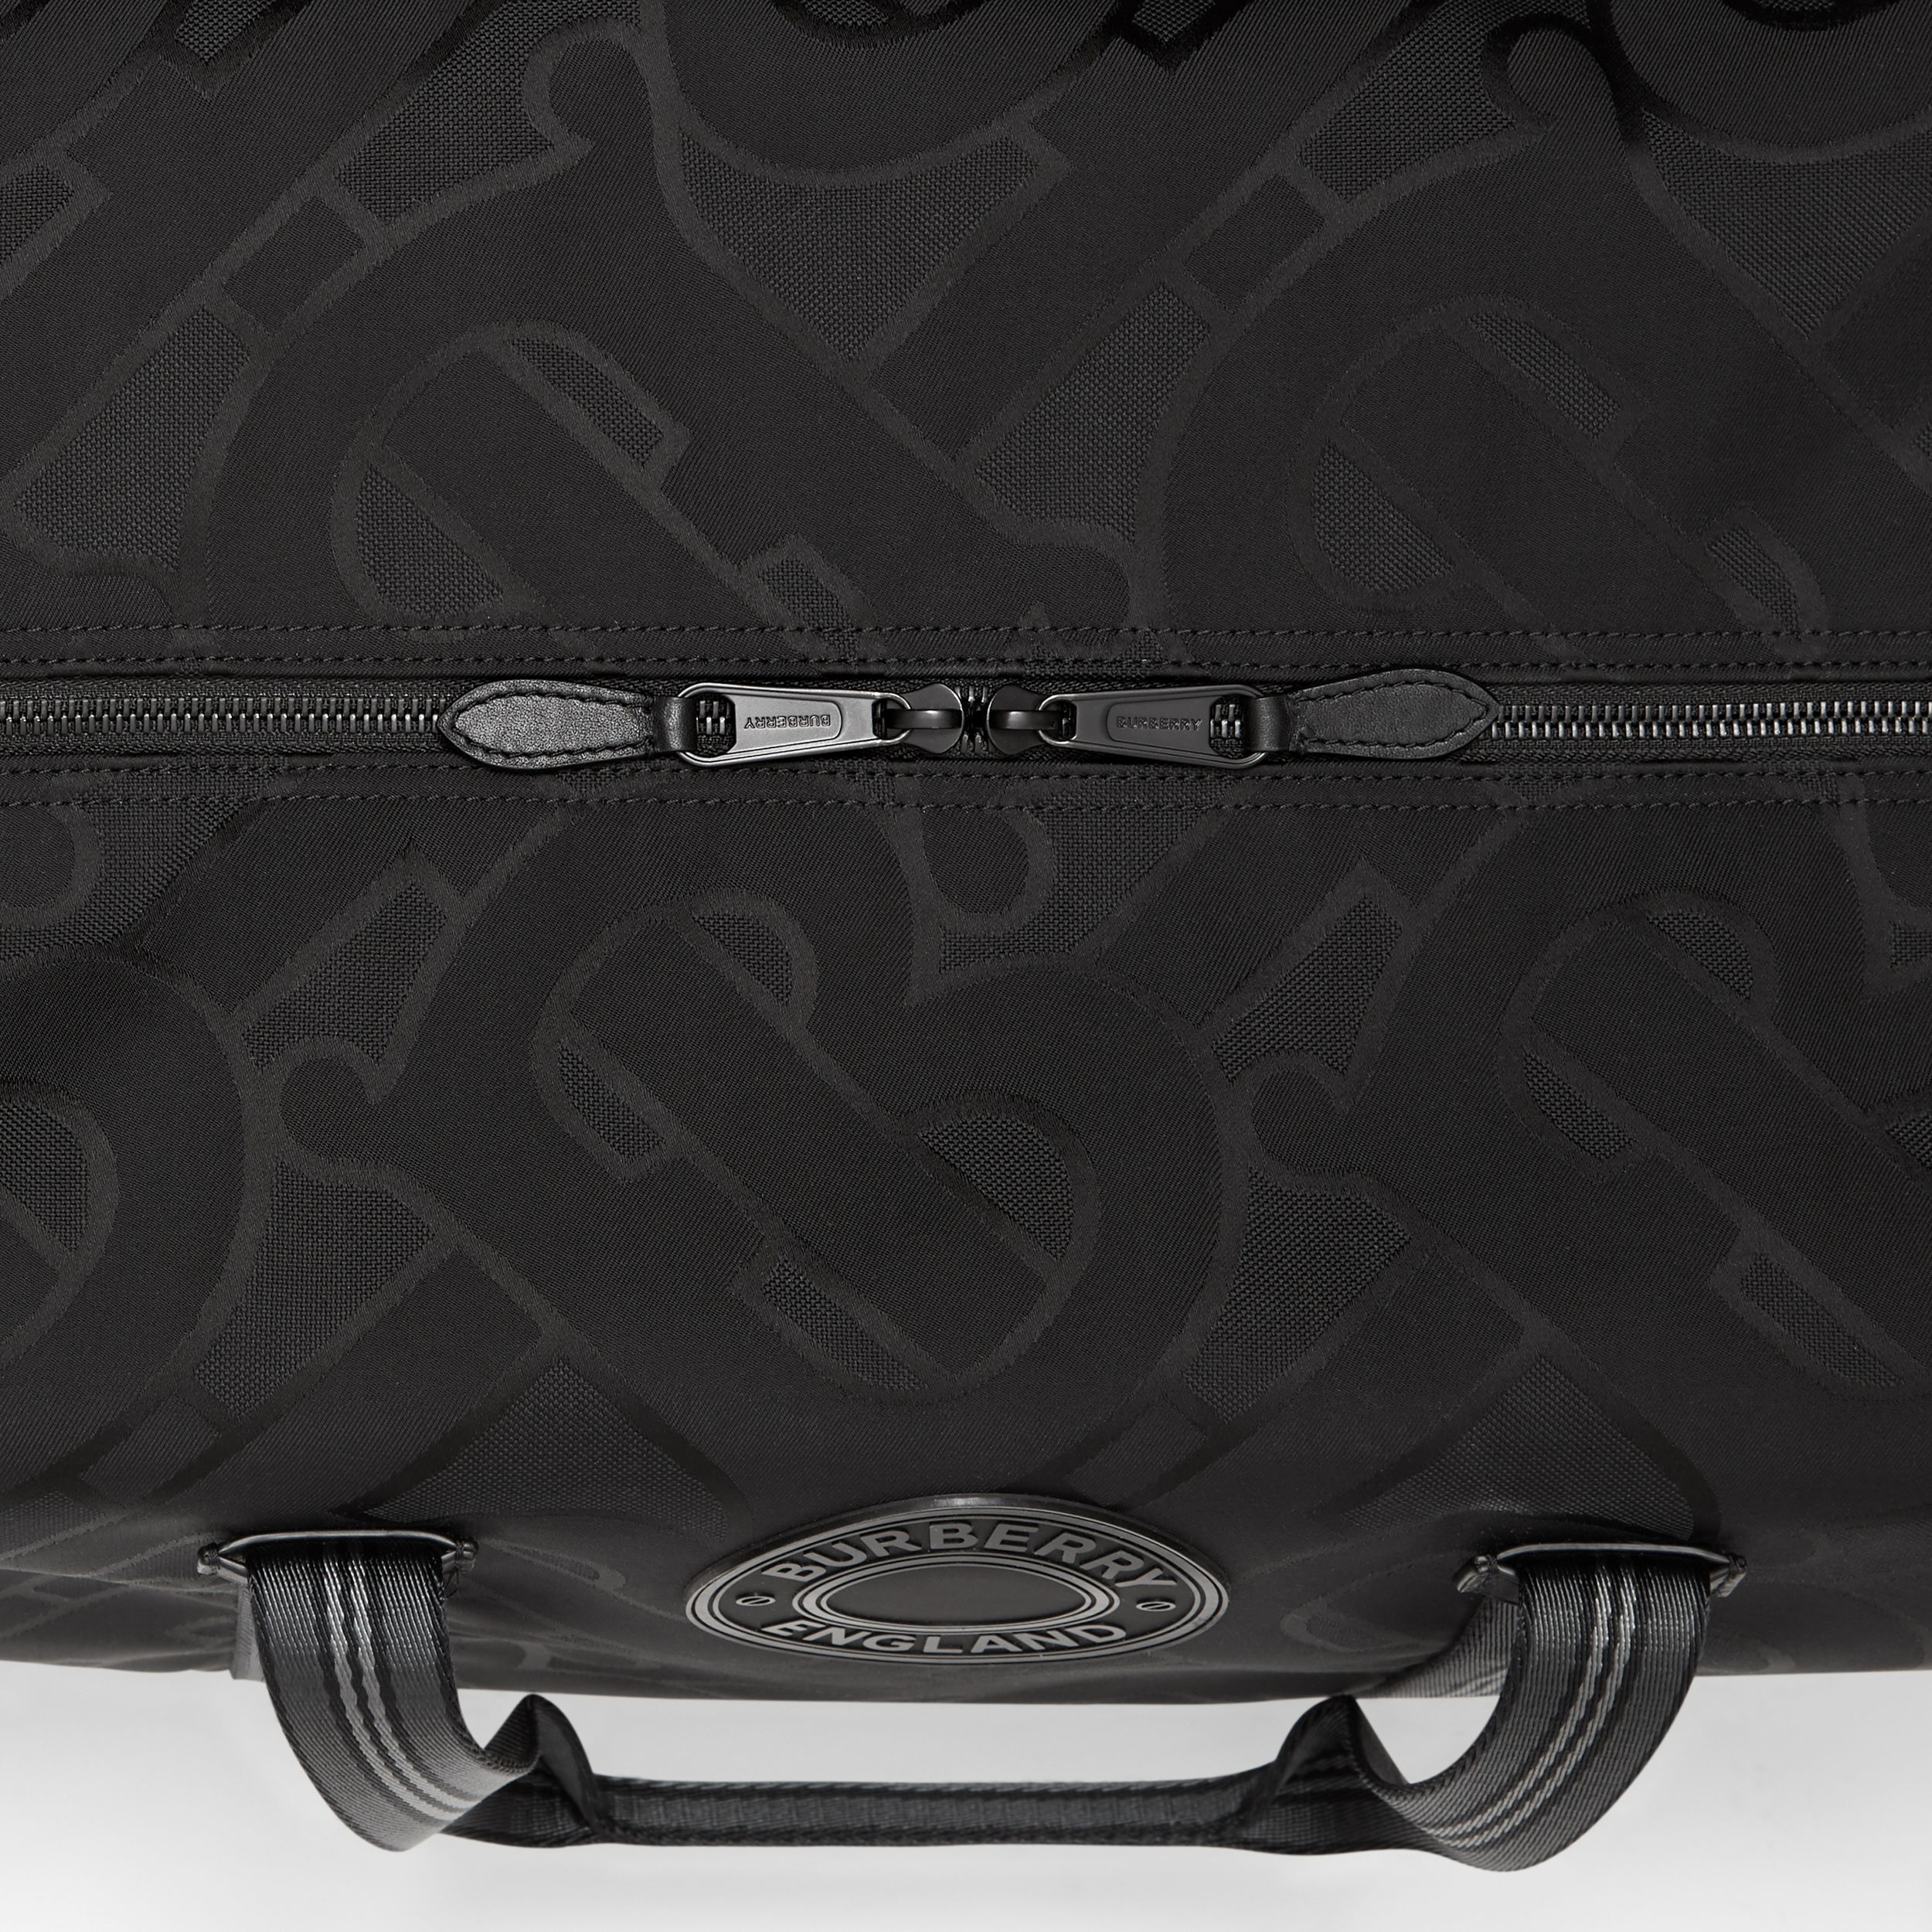 Monogram Recycled Polyester Jacquard Holdall in Black - Men | Burberry Hong Kong S.A.R. - 2